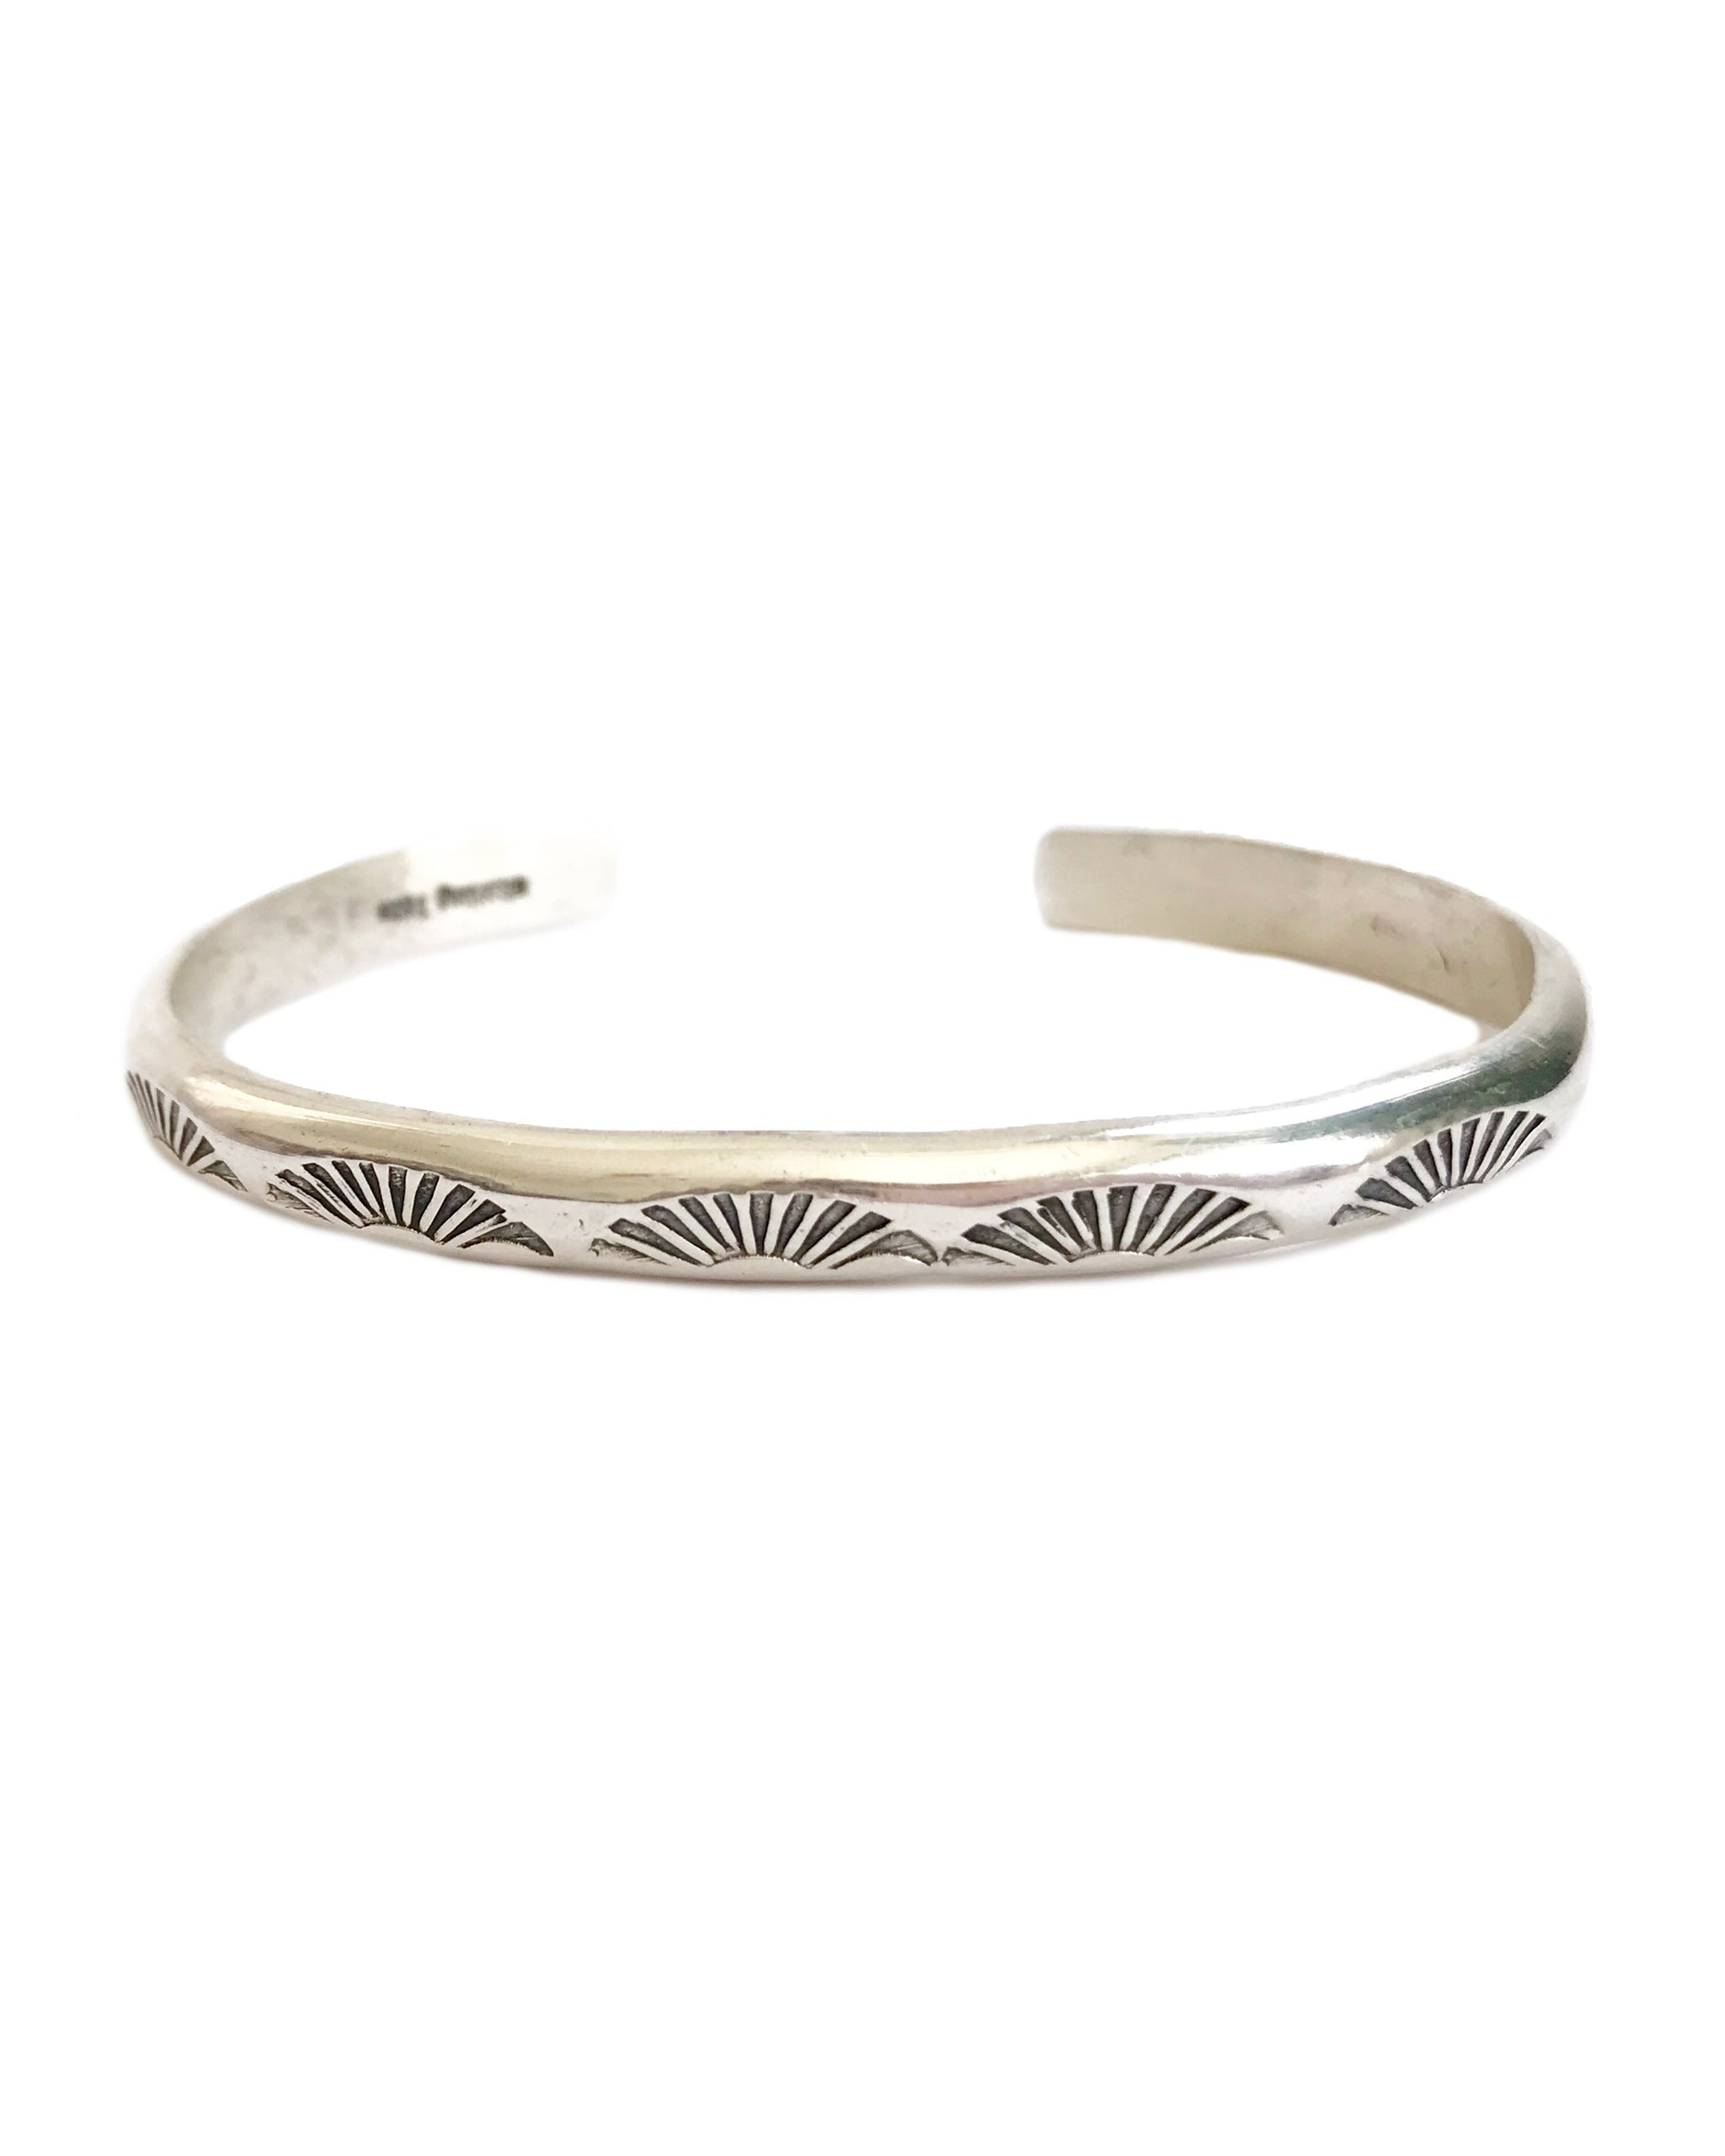 Sunrise Cuff, Sterling Silver Sunrise Stamped Half round cuff, handmade by Navajo artists